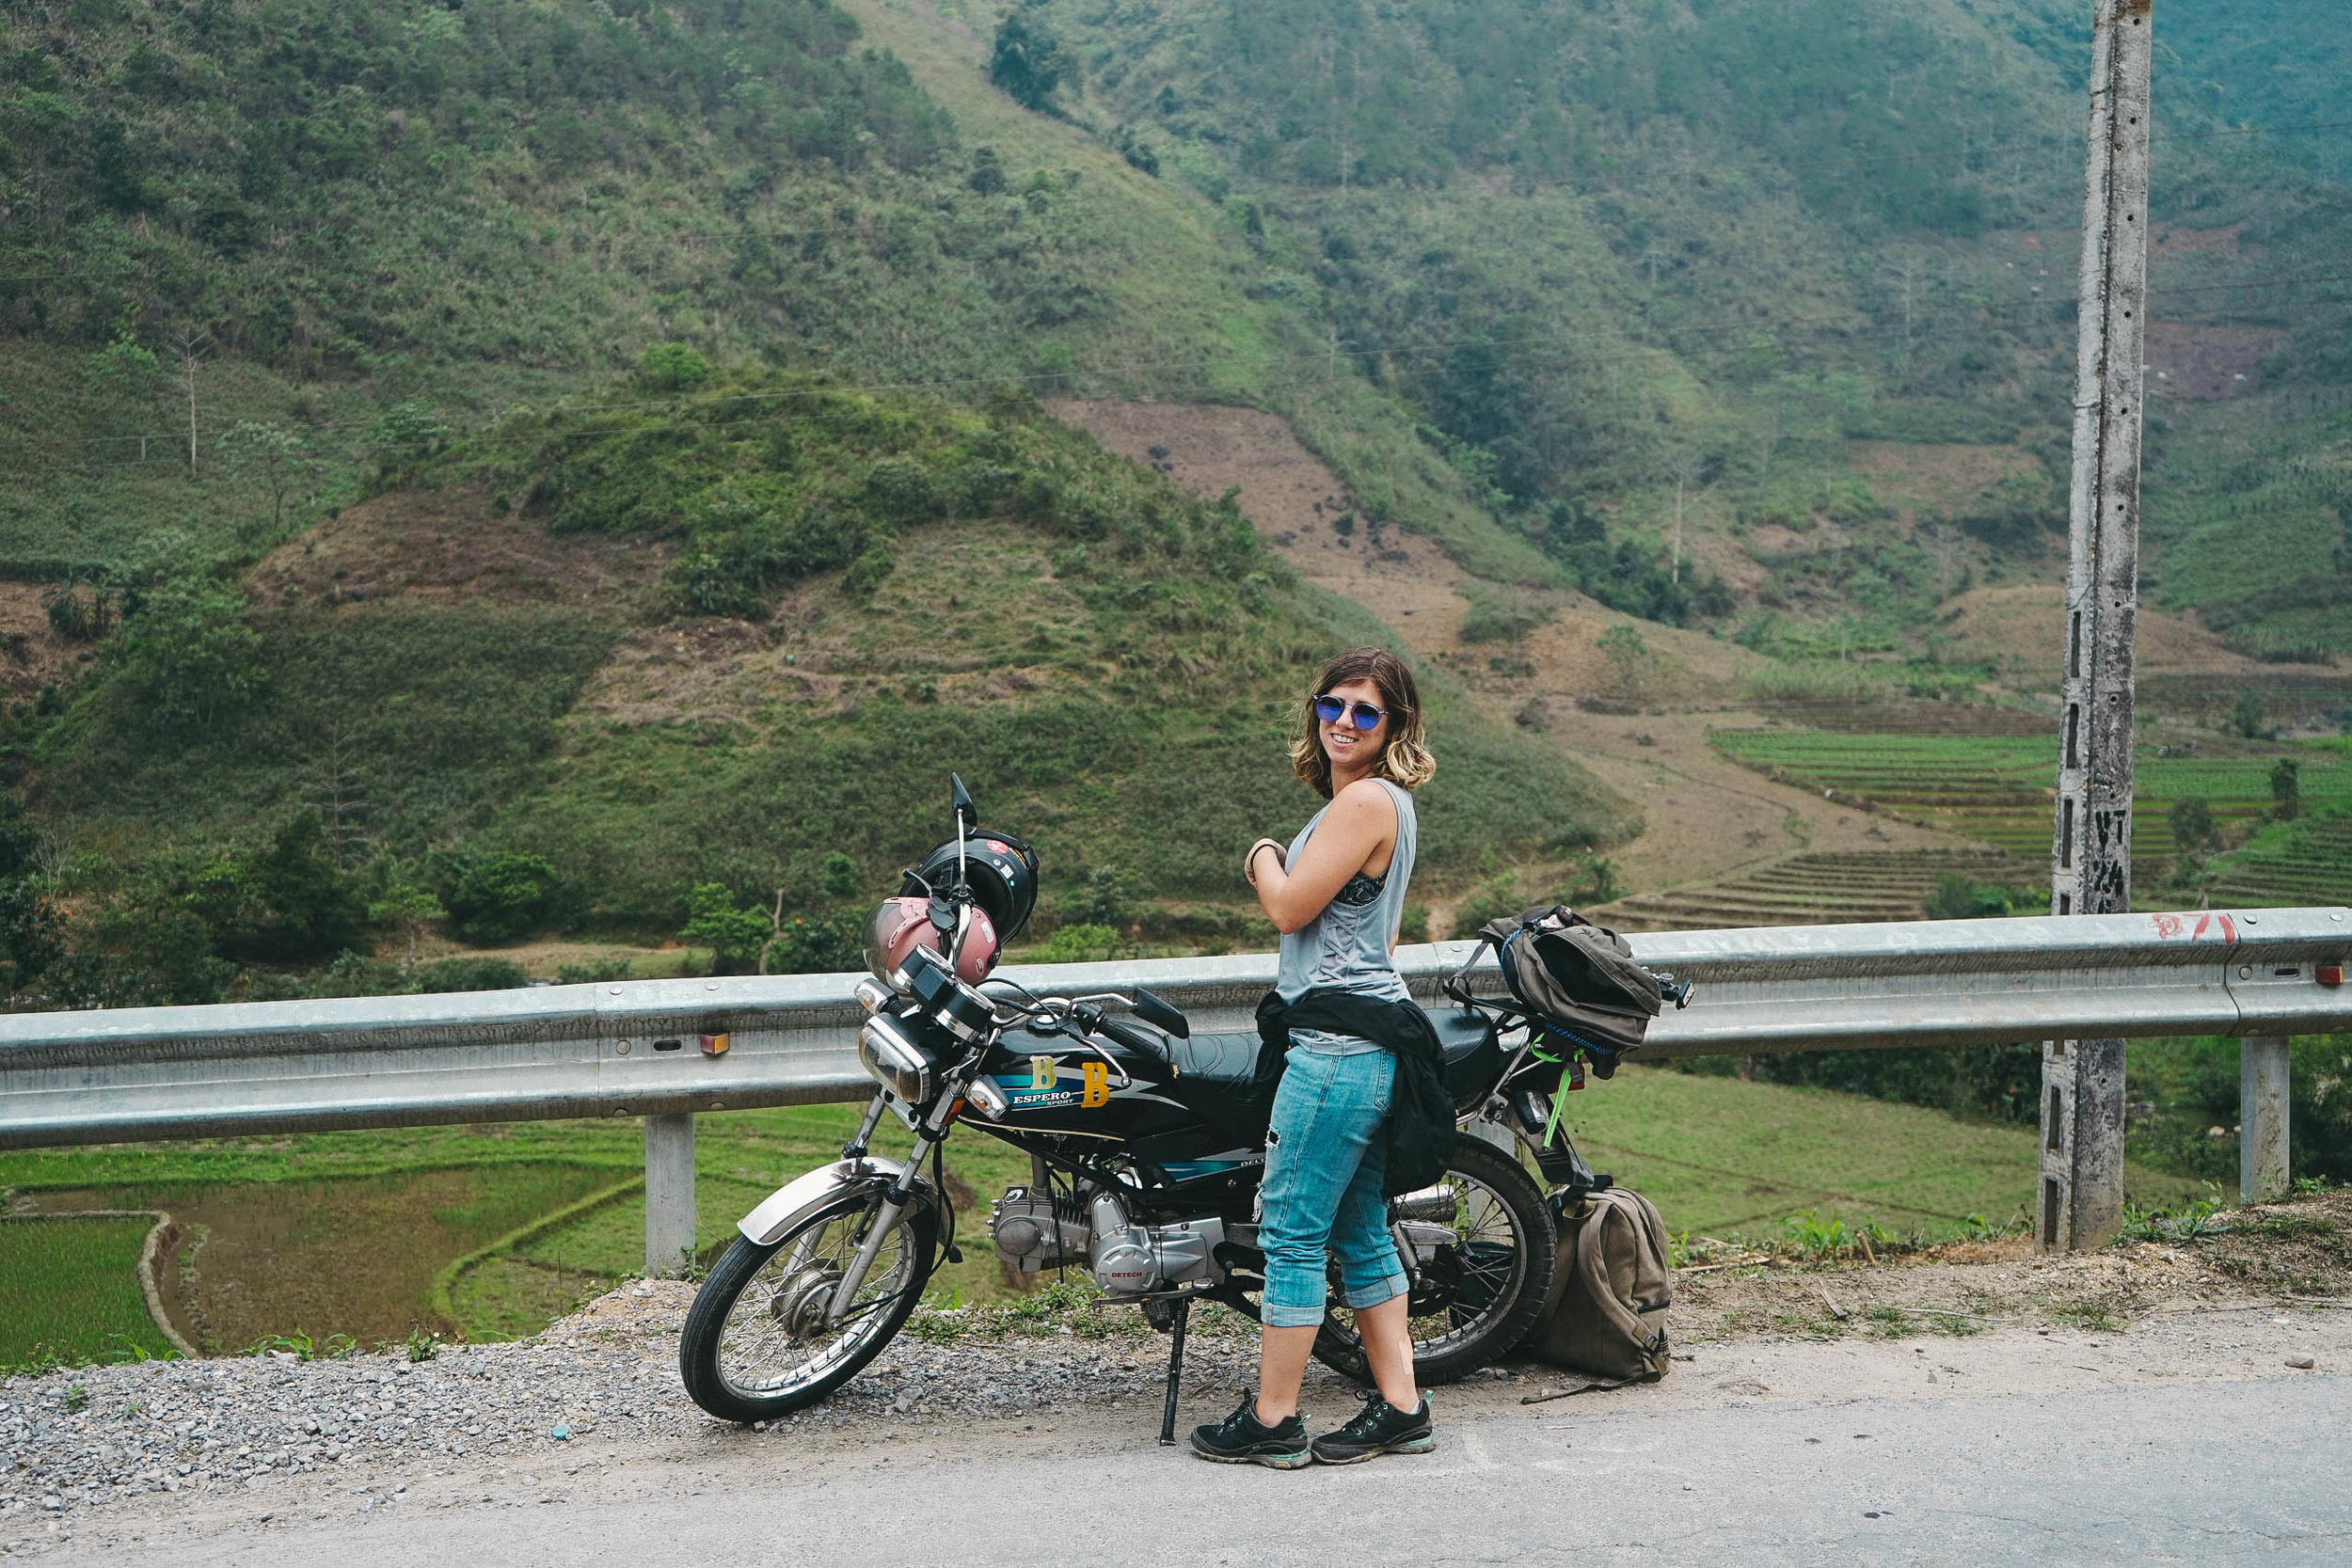 Our 125cc motorbike successfully got us through the Ha Giang Loop!